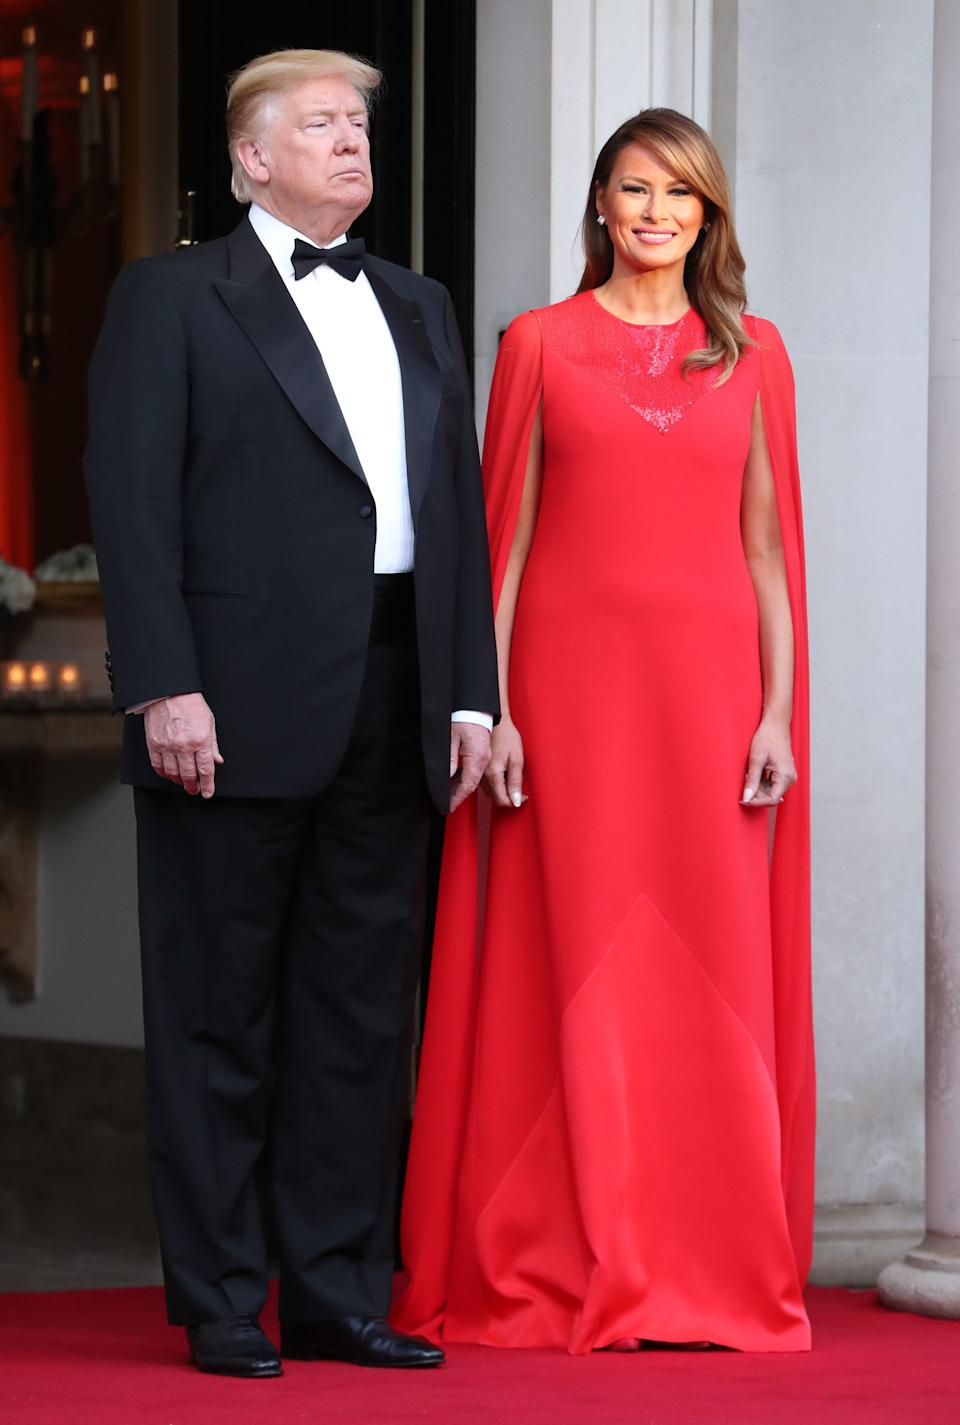 The US First Lady chose a sweeping red caped gown for the state dinner [Photo: Getty]